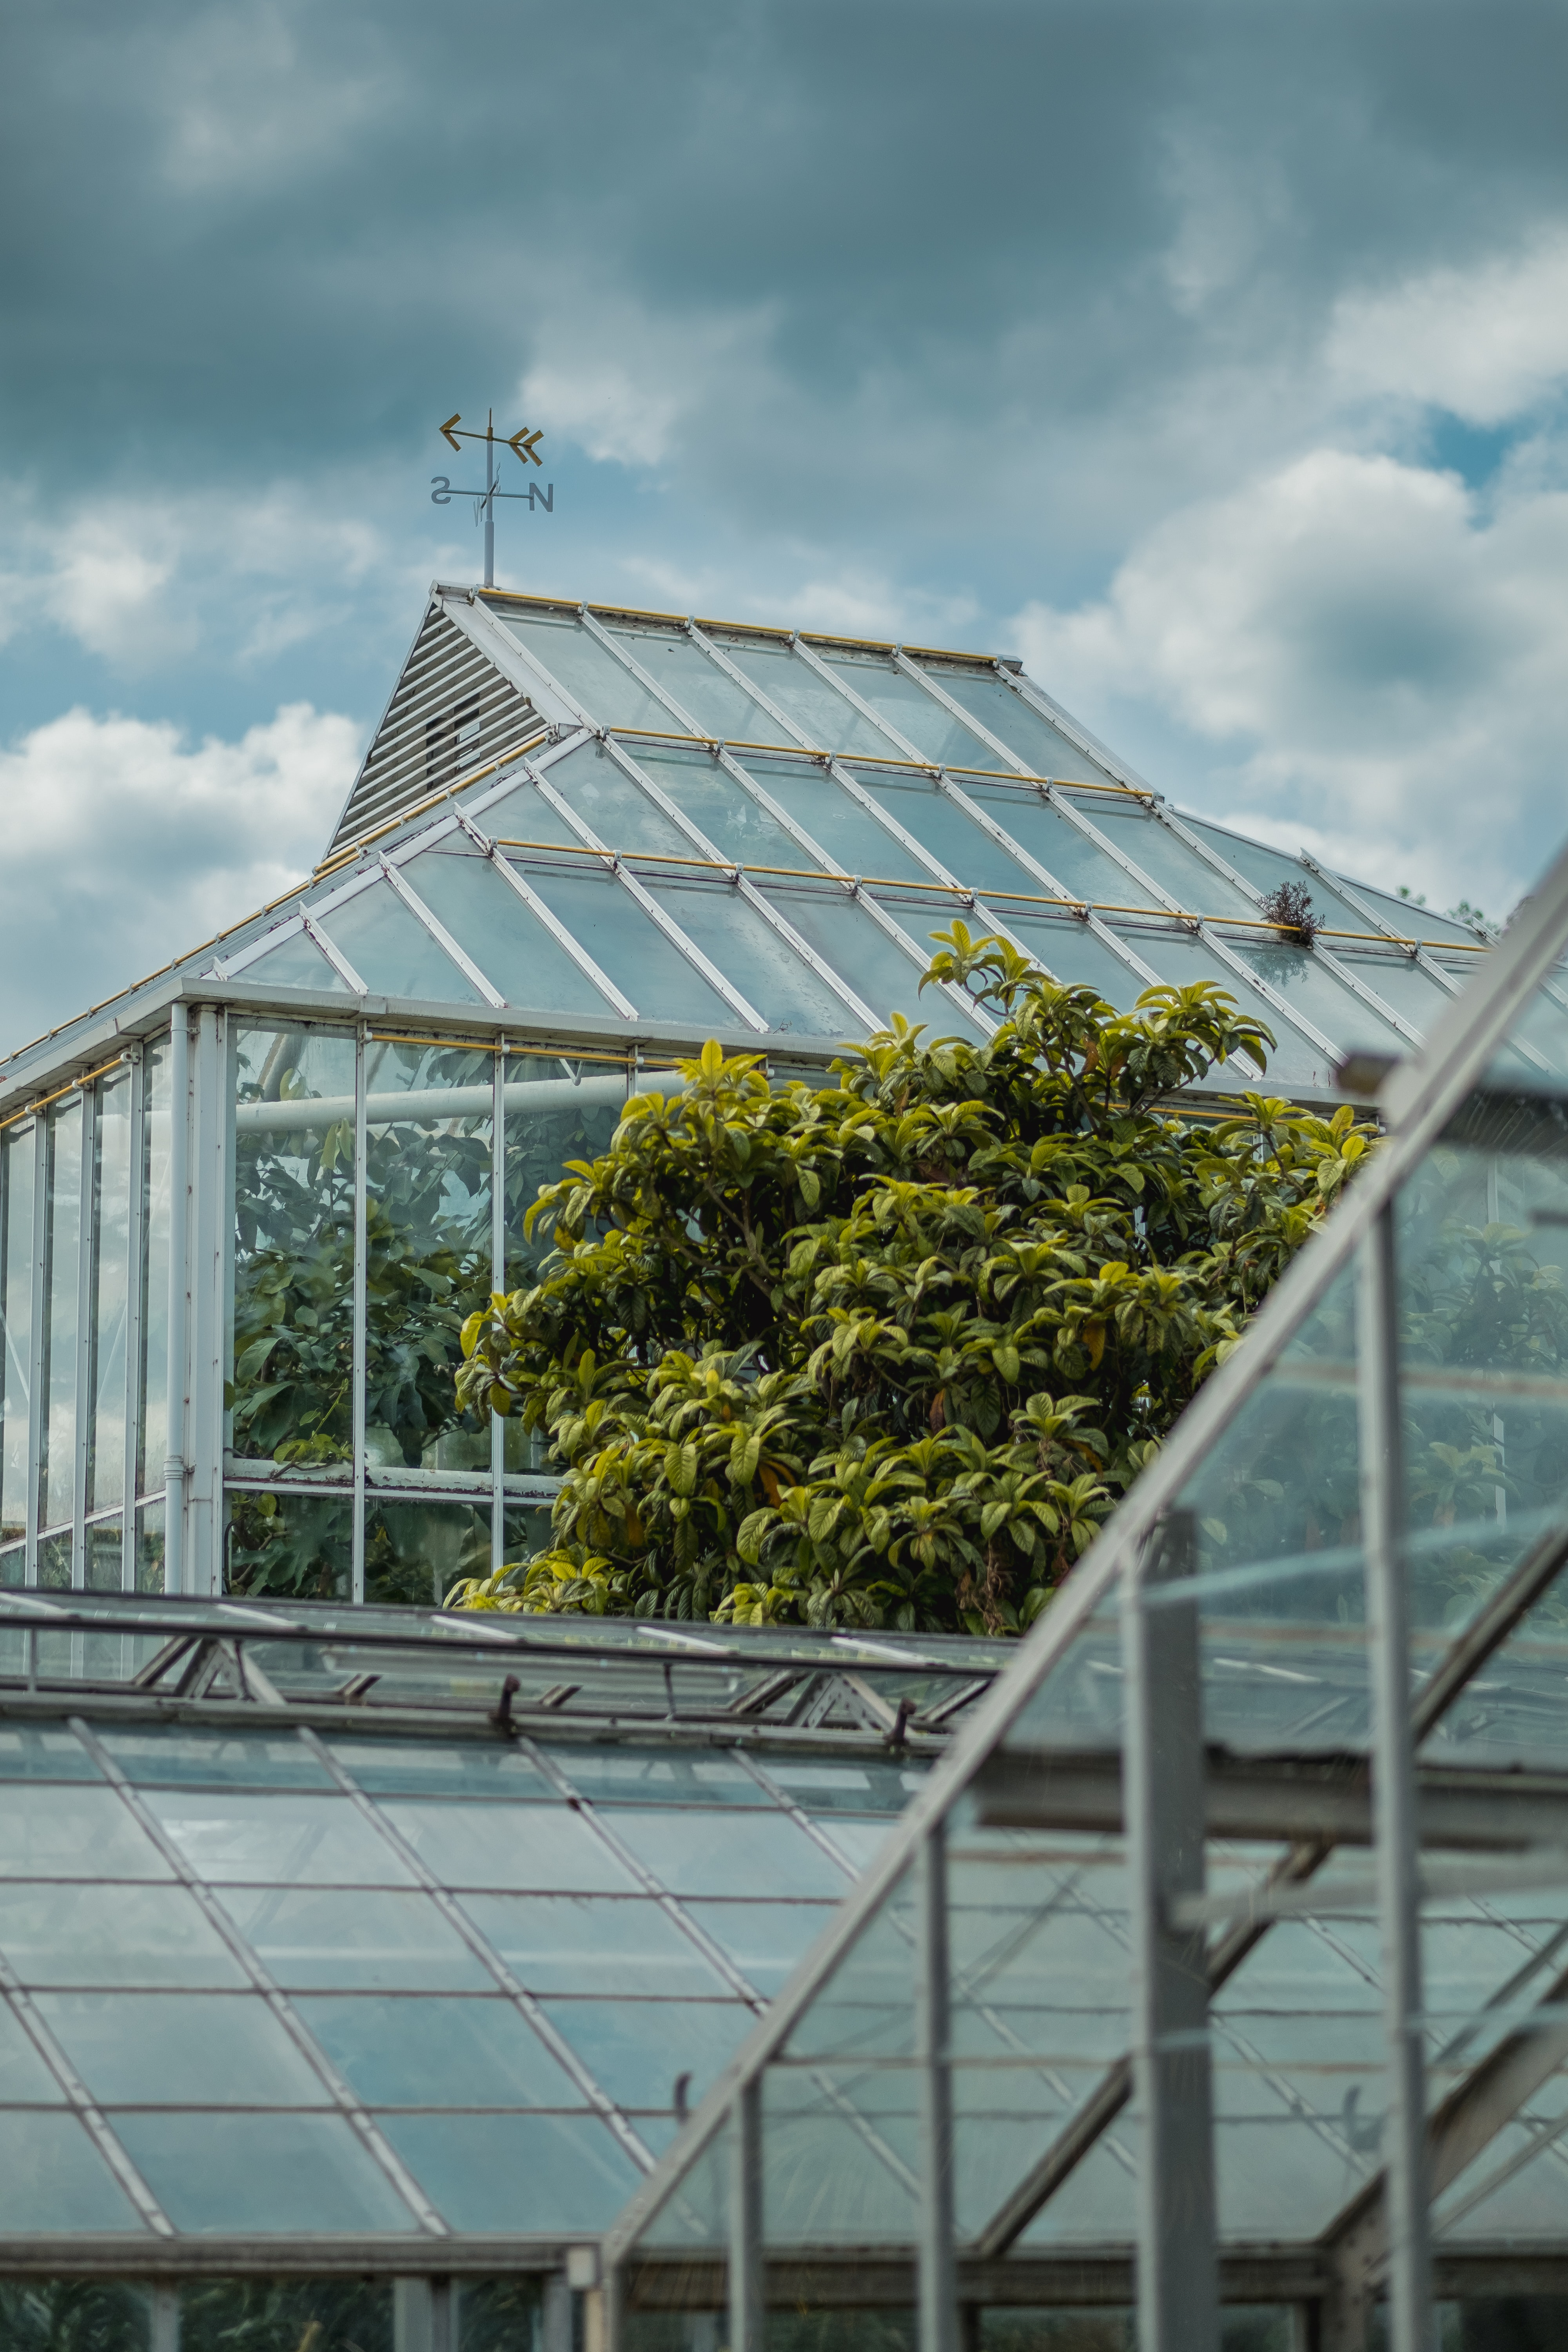 glass greenhouse under cloudy sky